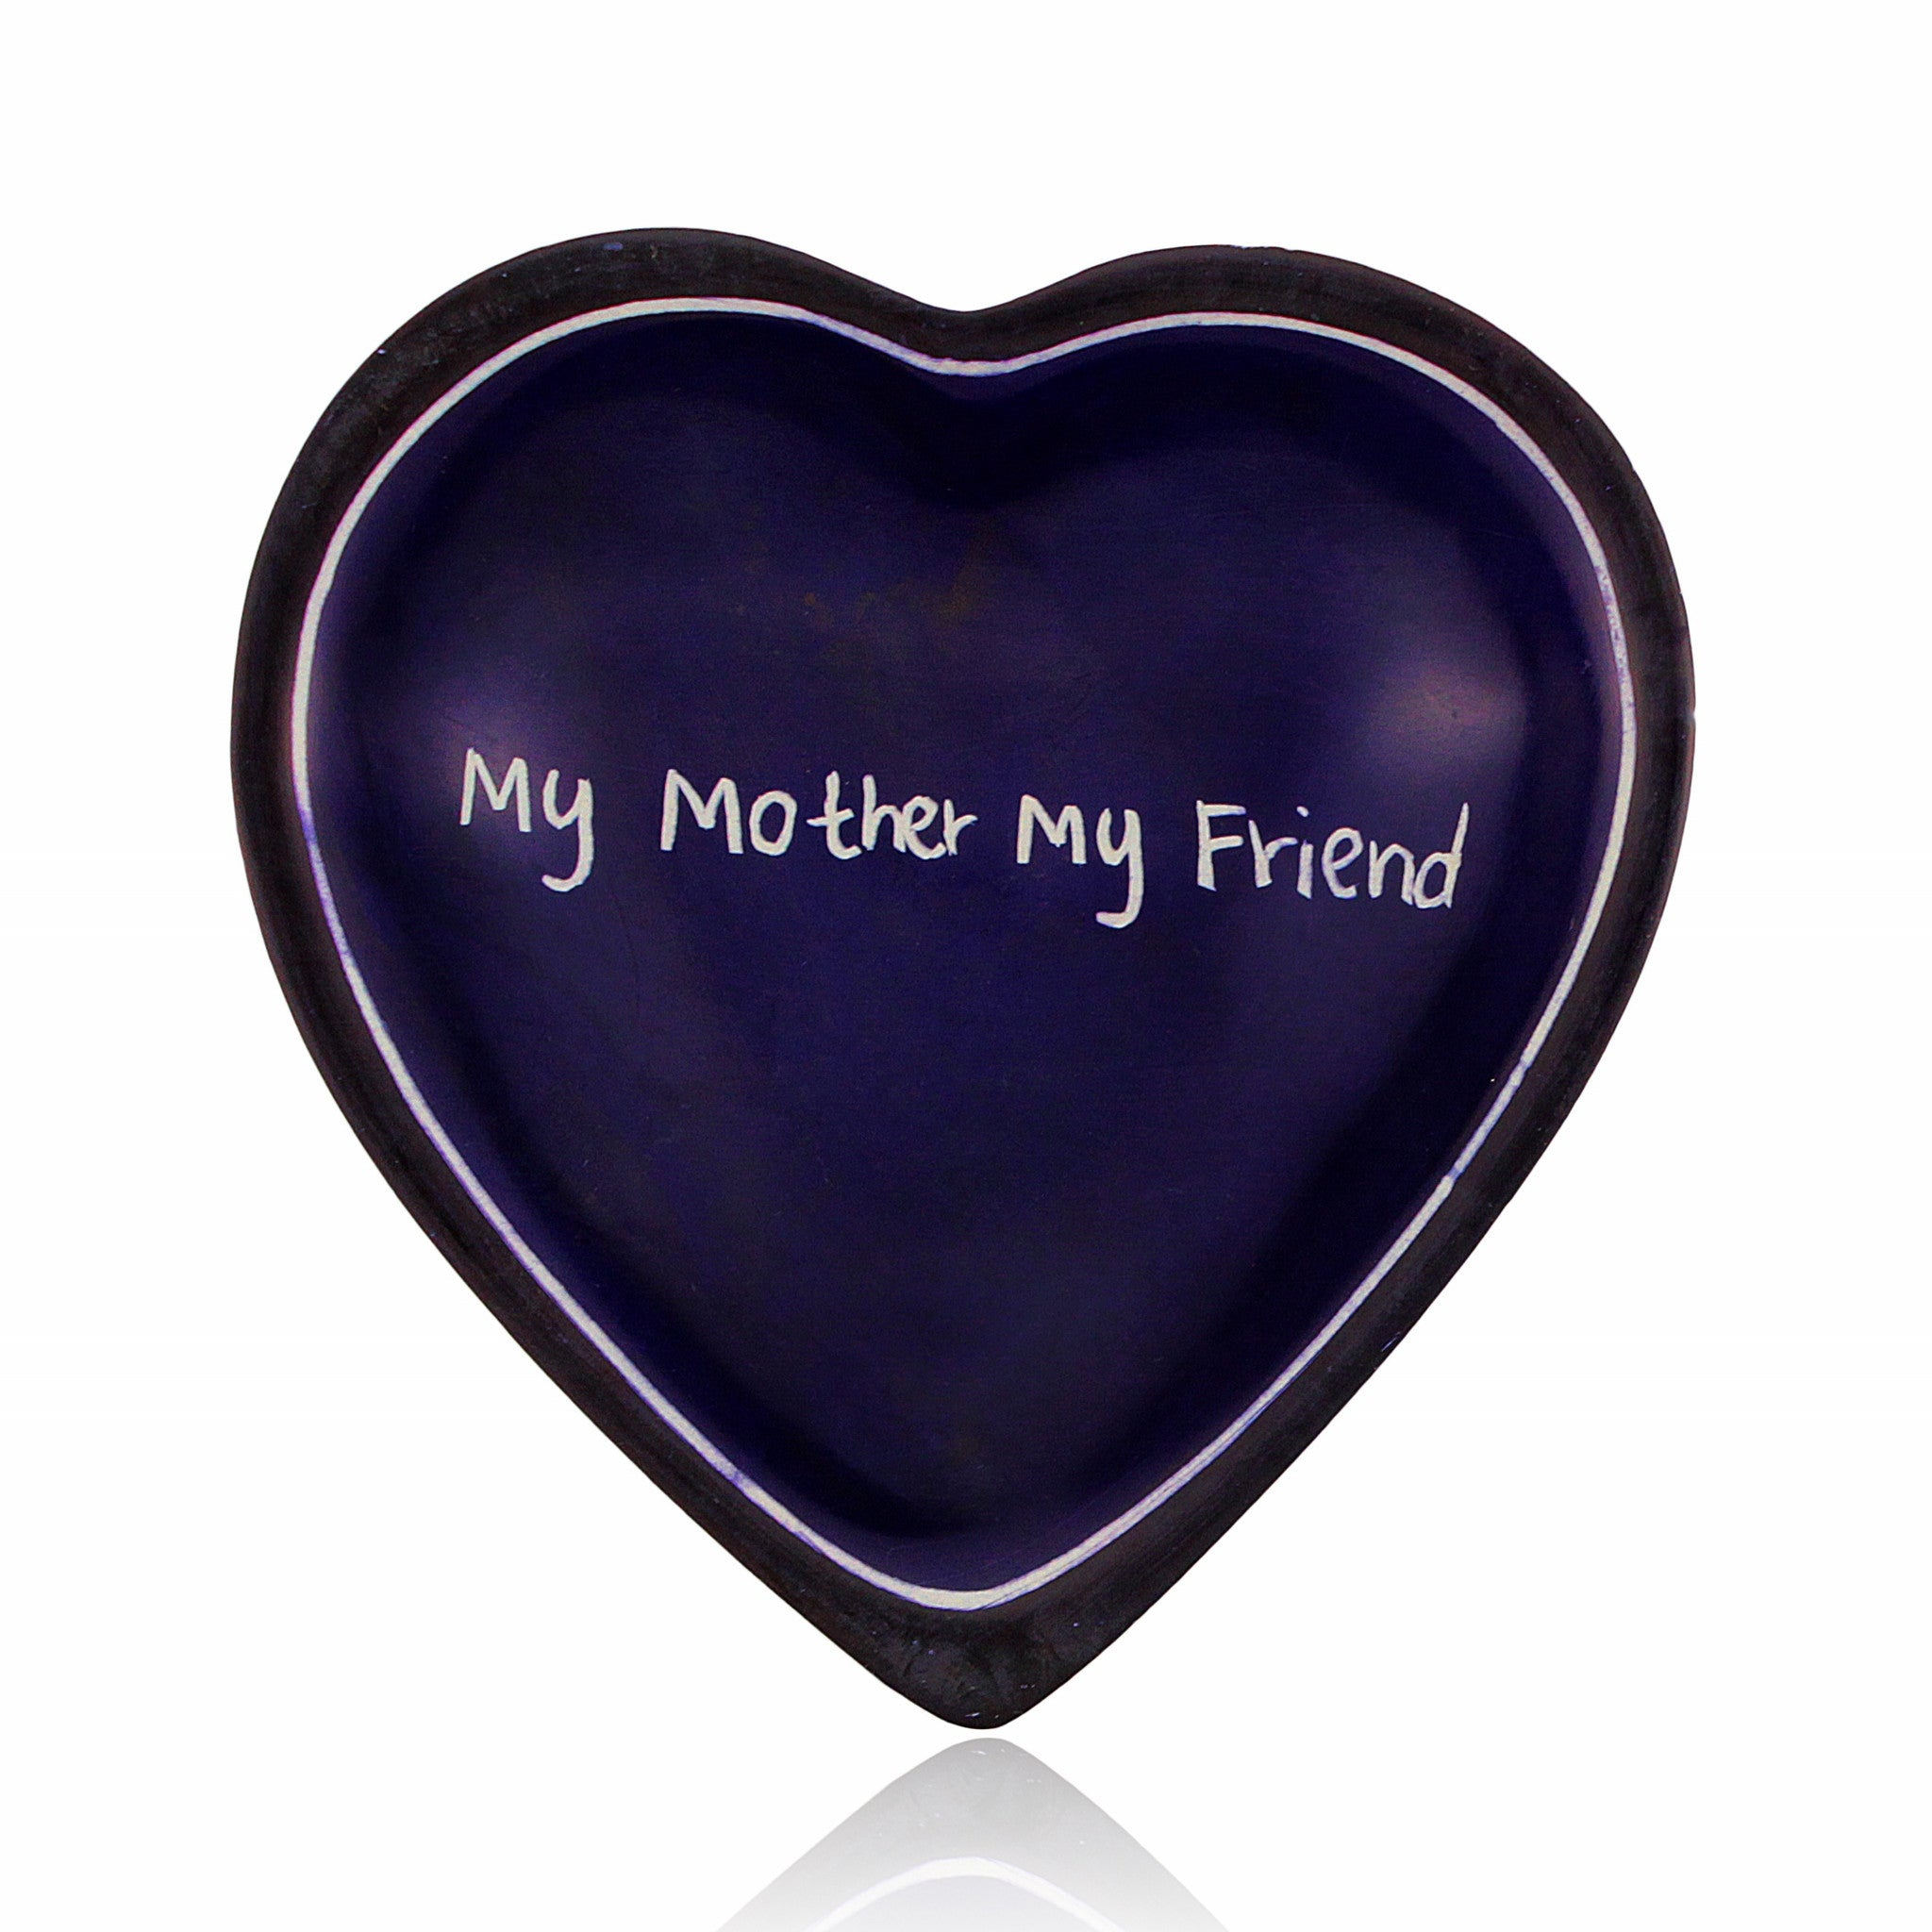 My Mother, My Friend Kenyan Heart Shaped Soapstone Dish by Venture Imports